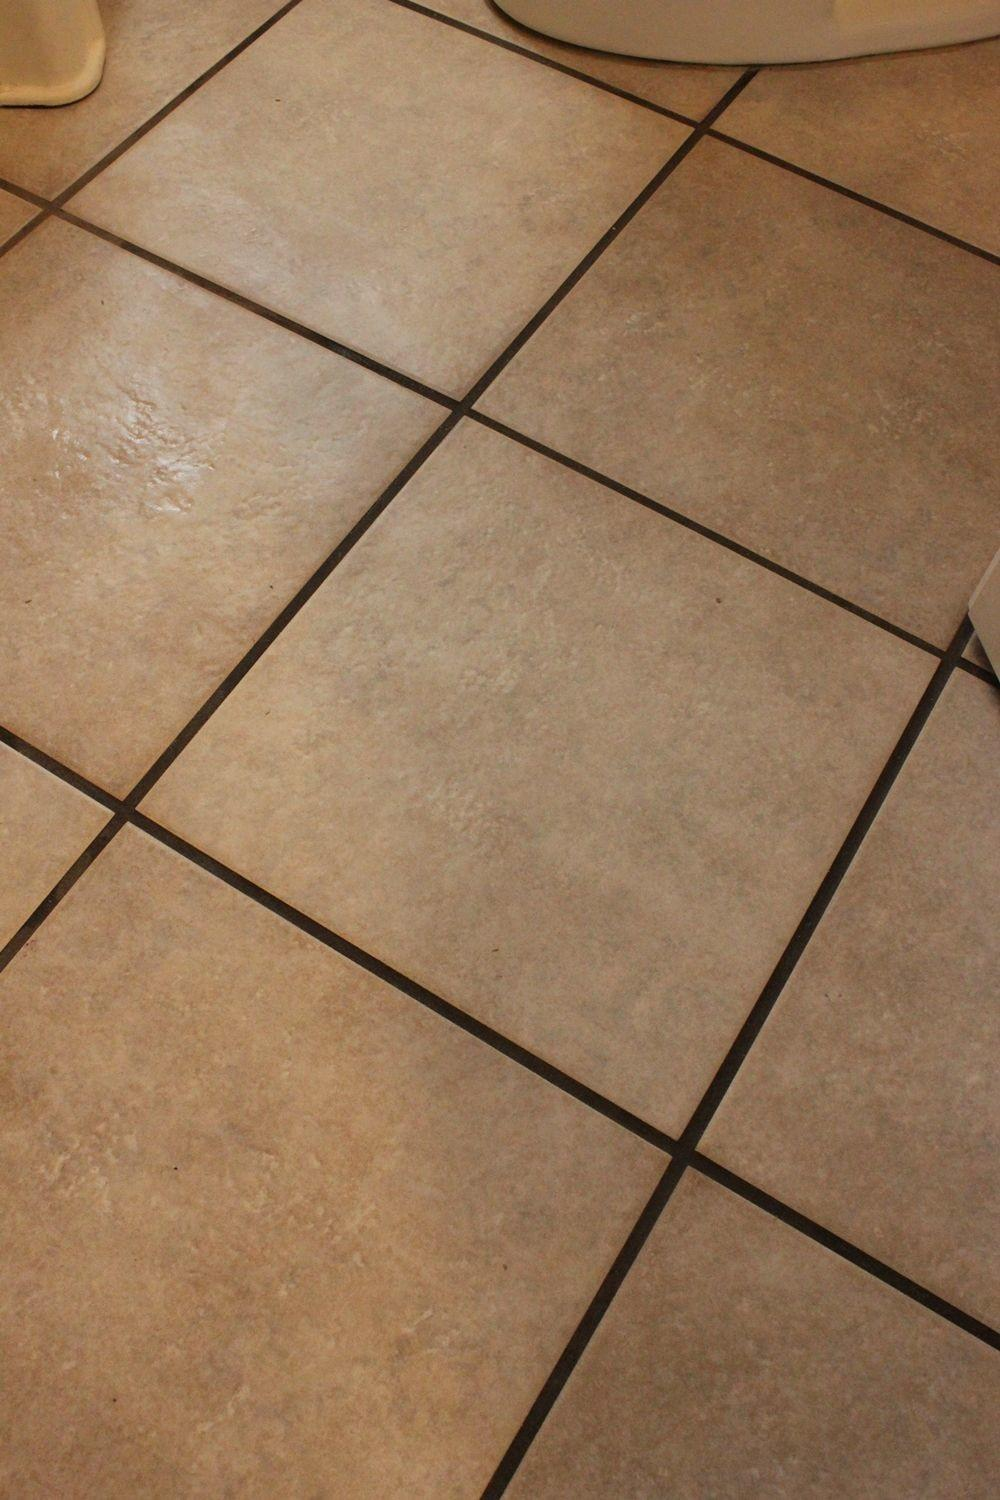 Diy Natural Grout Cleaner Tile Floor Home Decorating